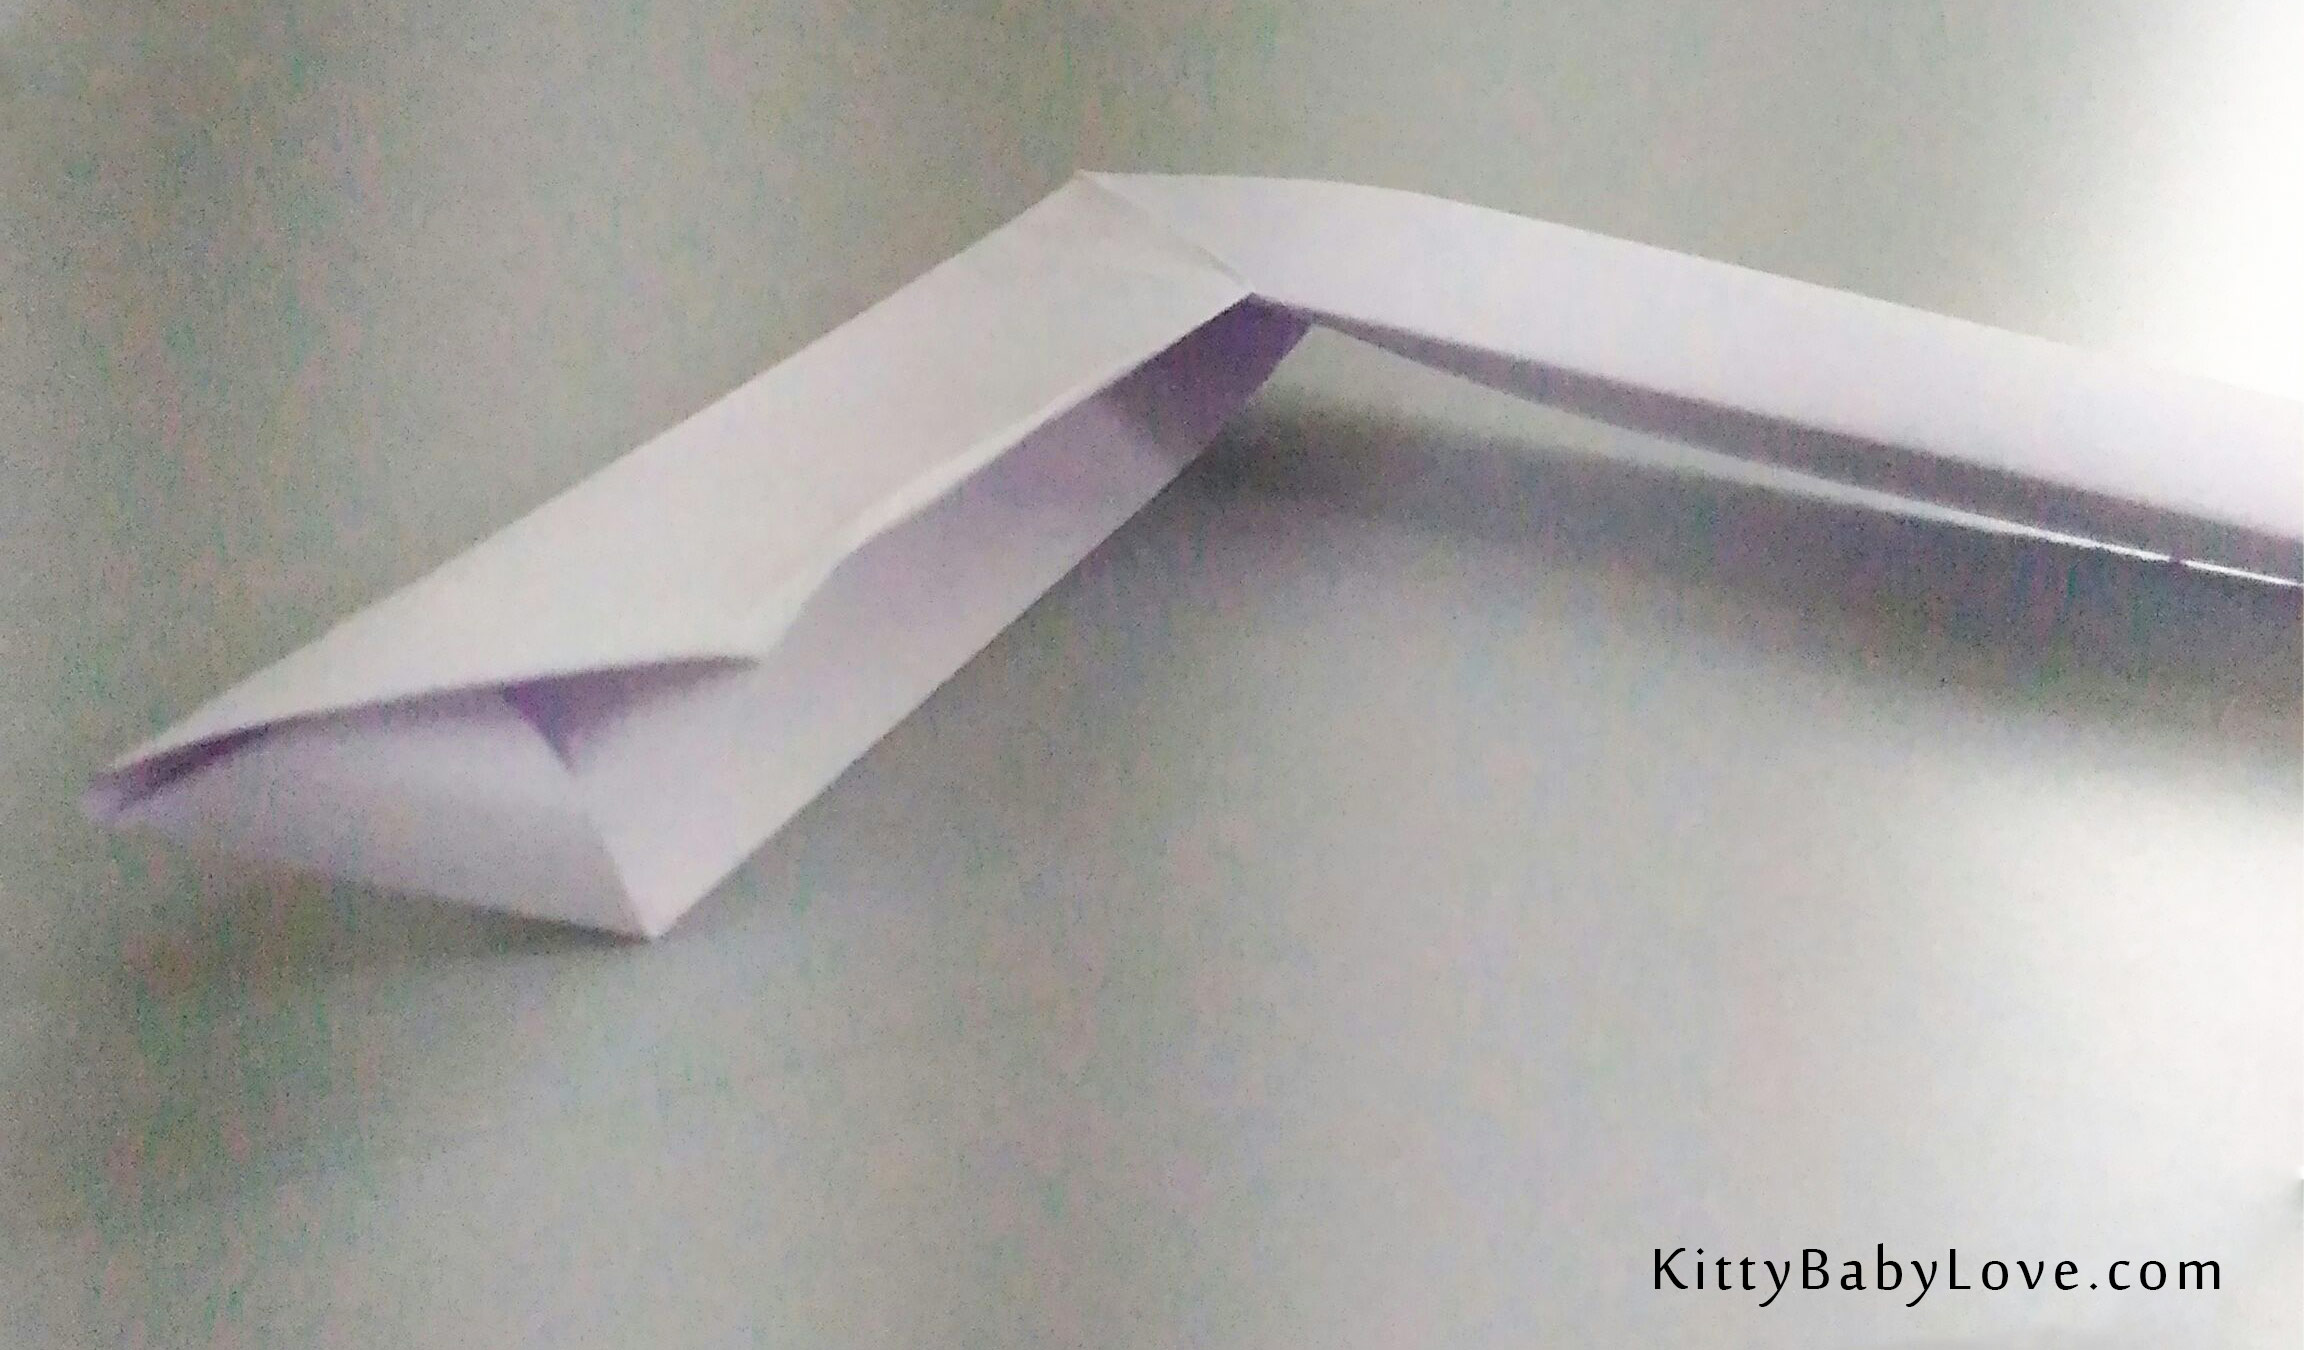 How to Make a Boomerang Paper Airplane (with Pictures) - wikiHow | 1350x2304